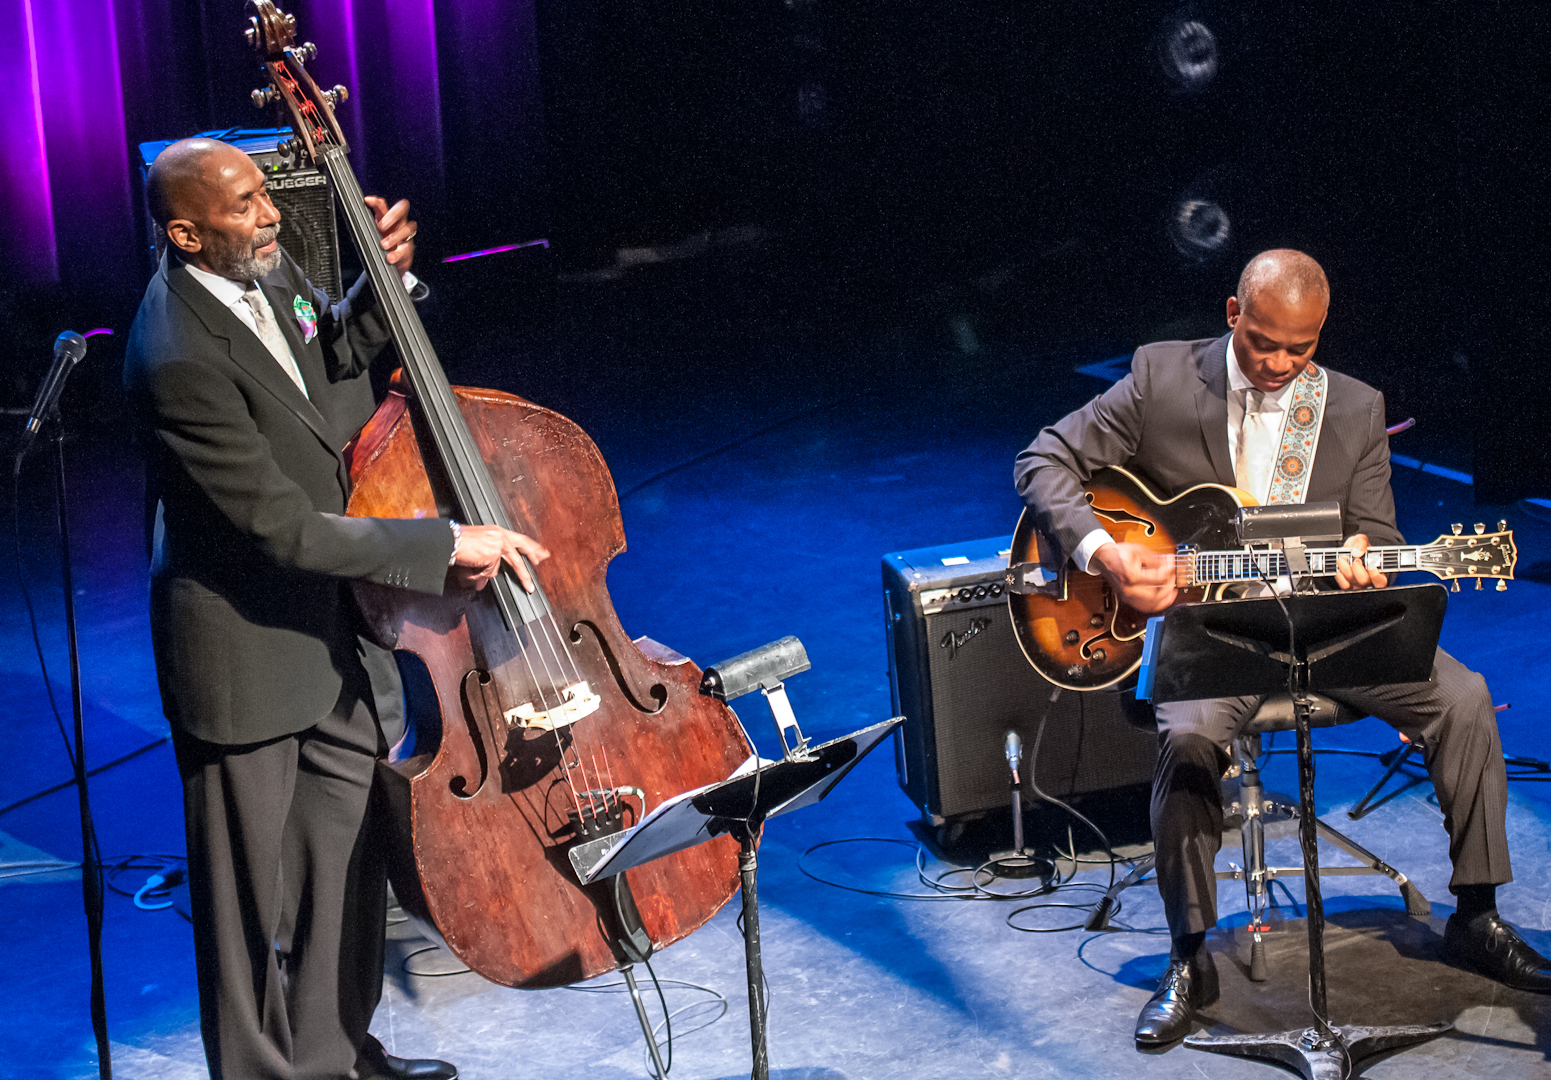 Ron Carter and Russell Malone at the Montreal International Jazz Festival 2012